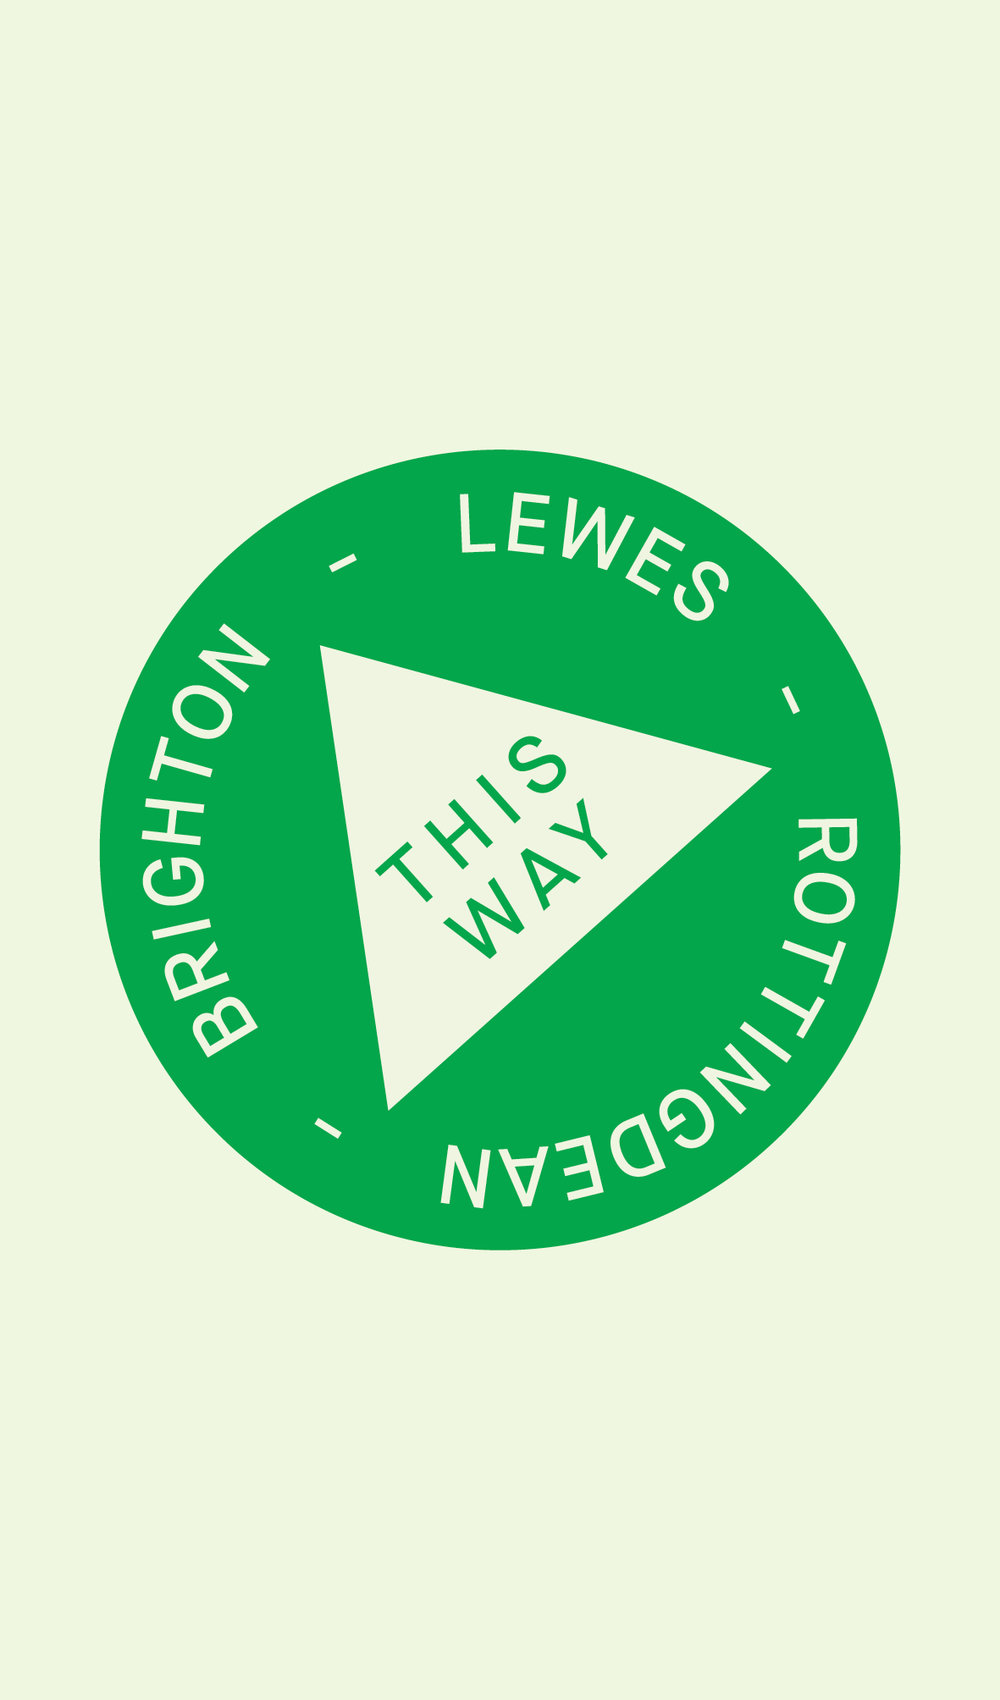 Brighton to Lewes Map